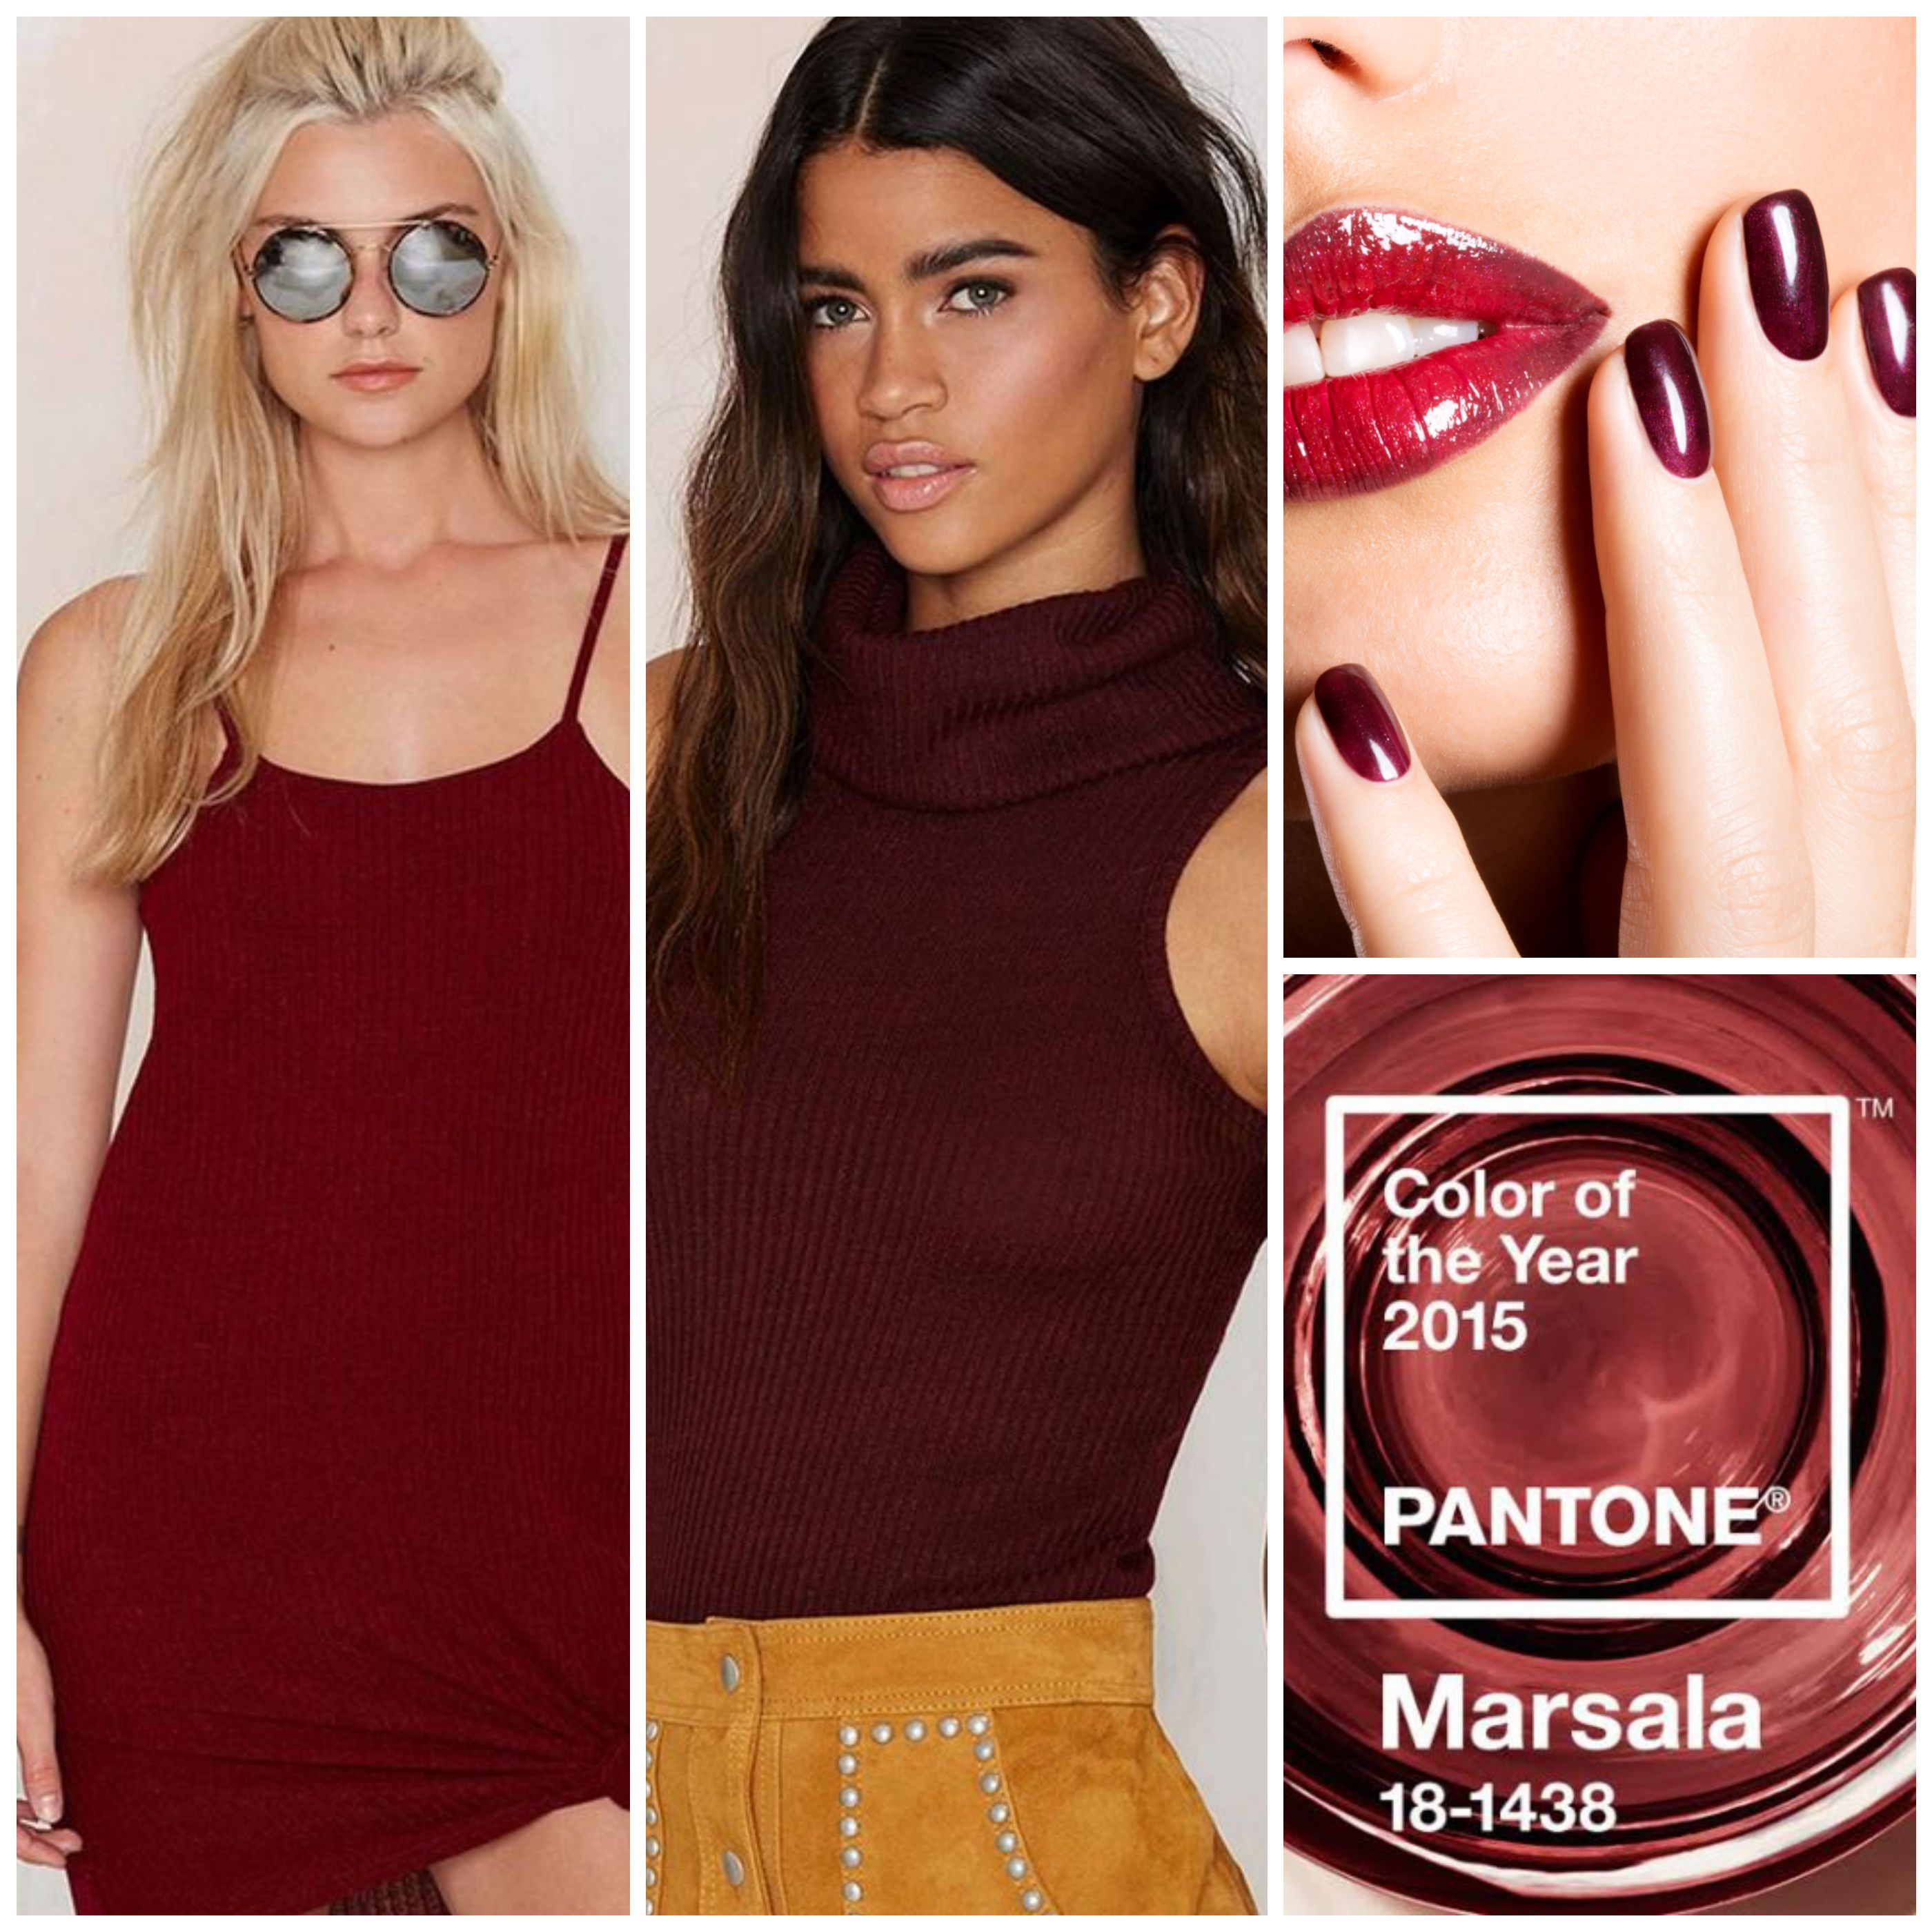 Marsala Pantone. Color of the year 2015